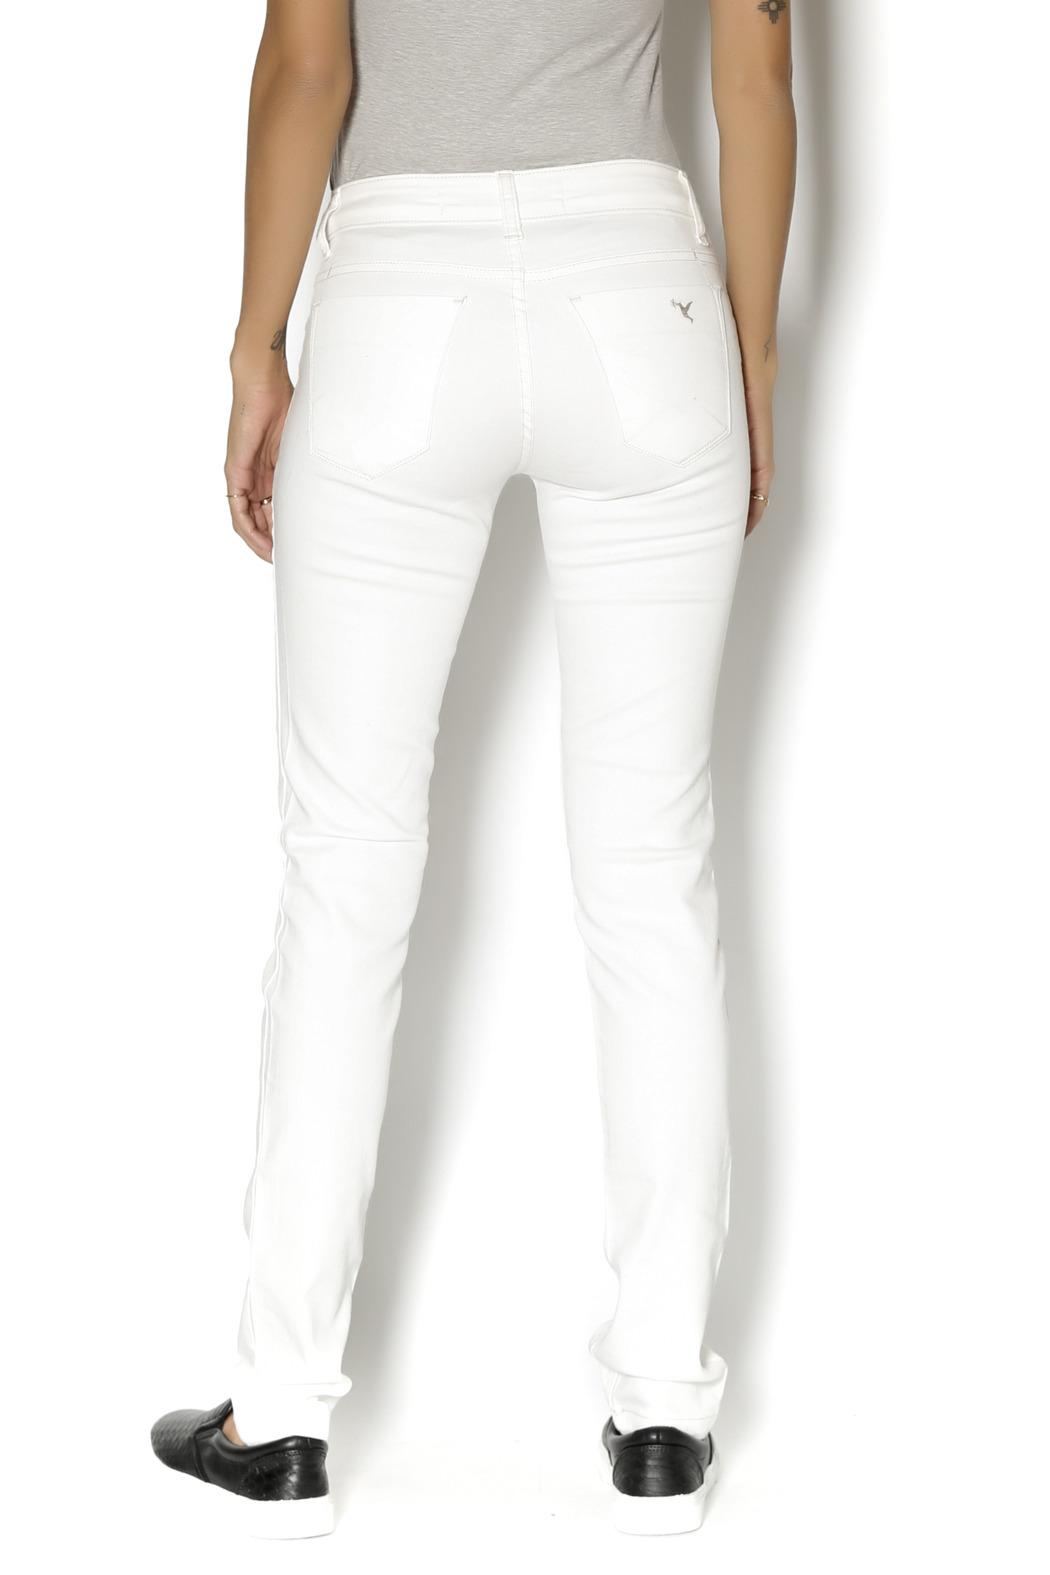 Beija Flor White  Denim - Back Cropped Image